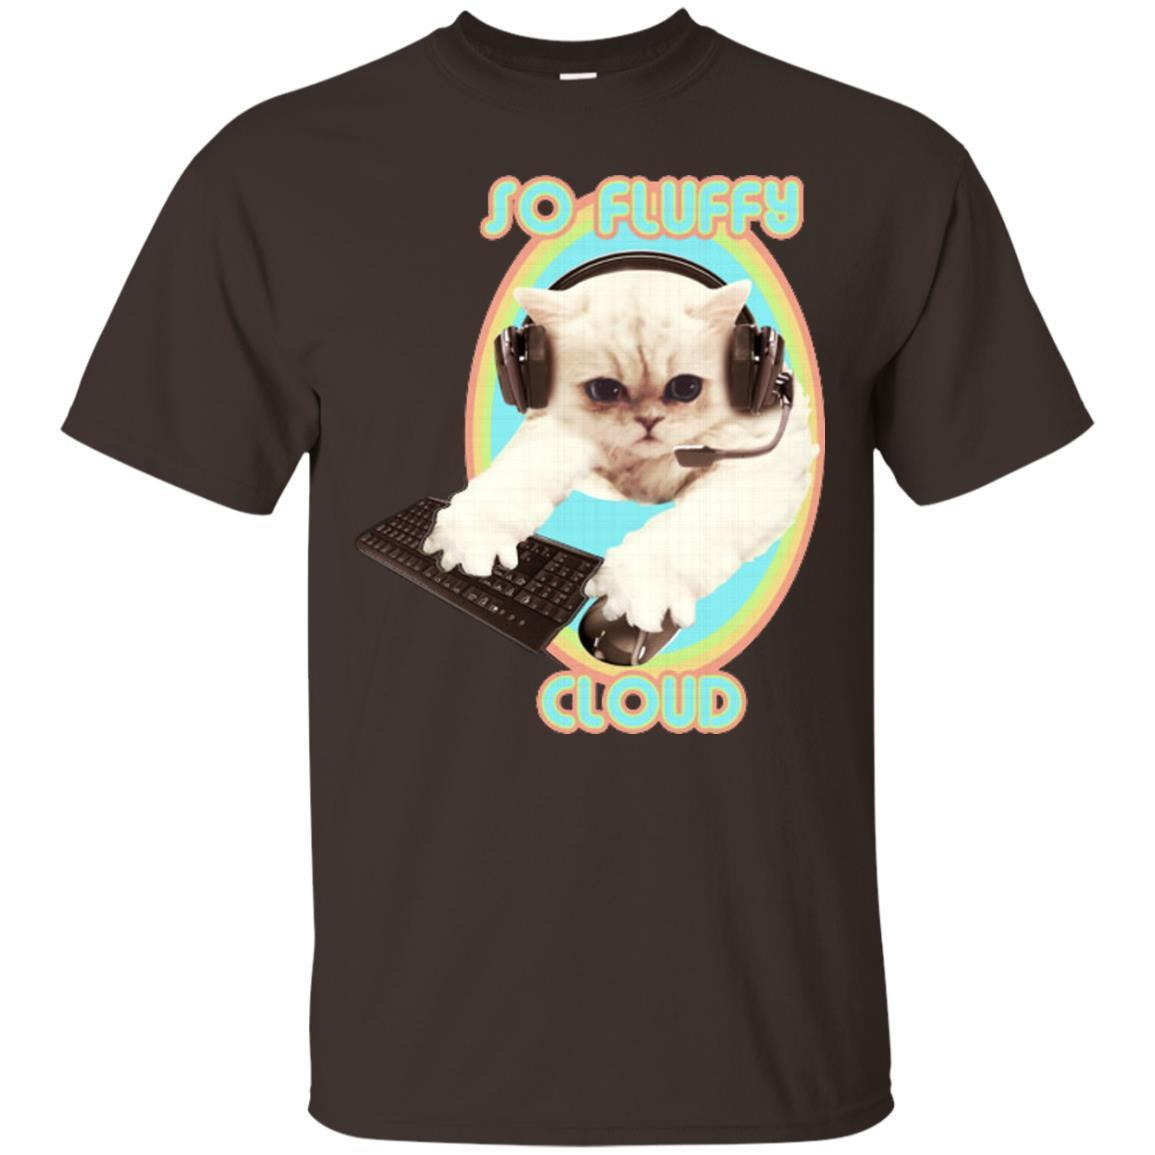 PopularMMOs So Fluffy Cloud Tee